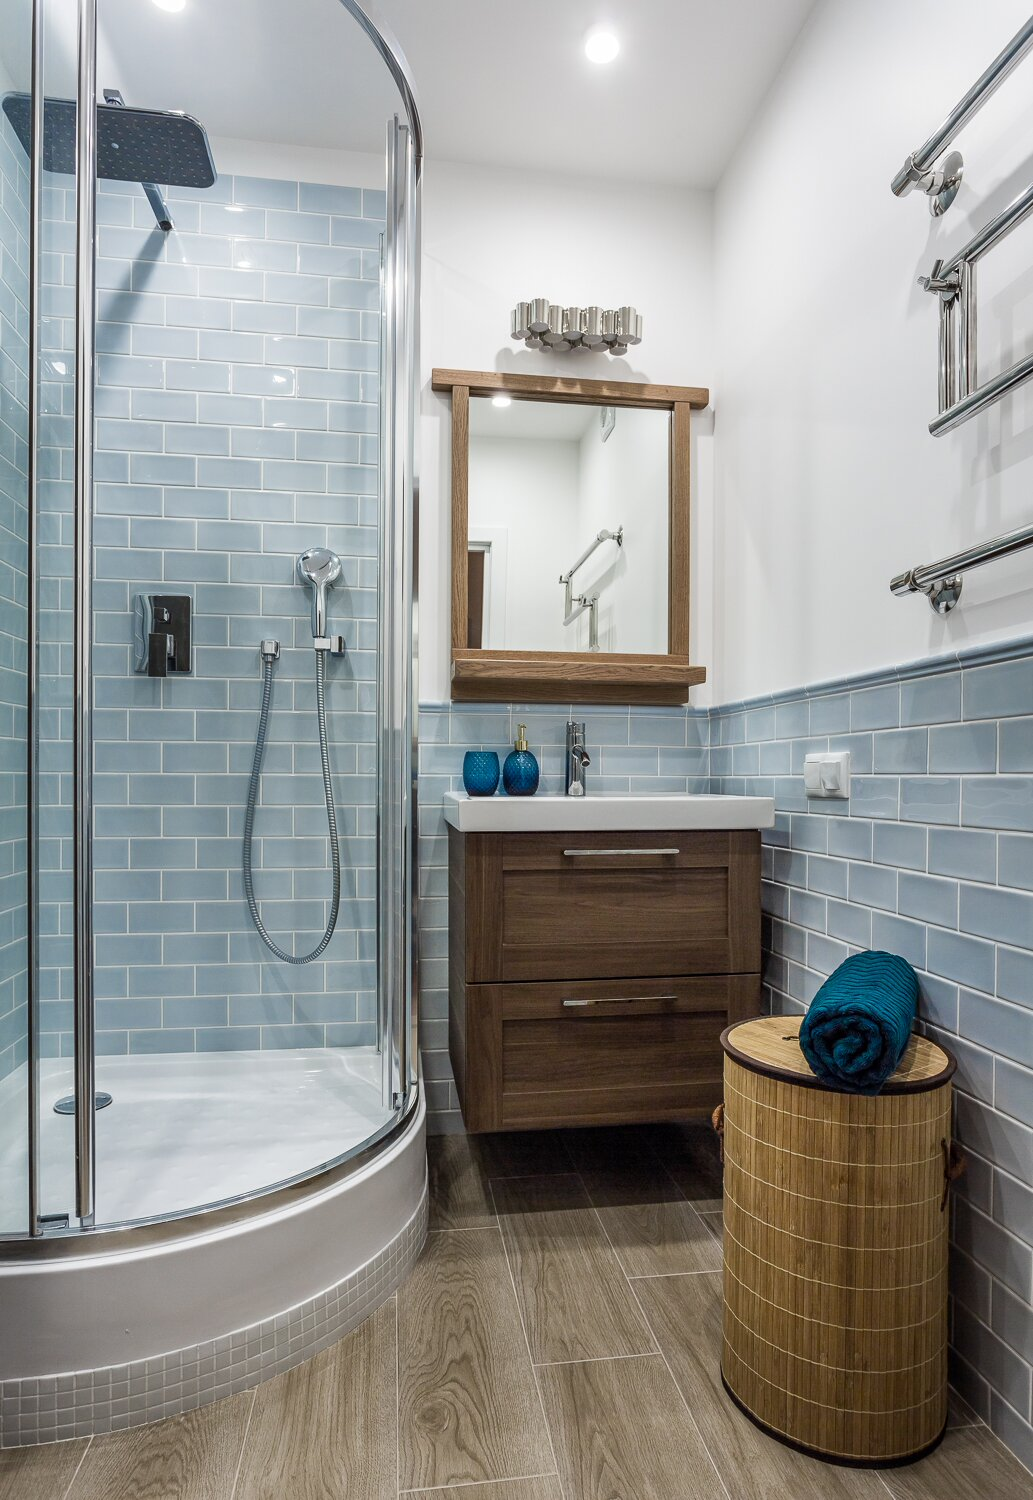 Bathroom Remodel From Start To Finish L Essenziale